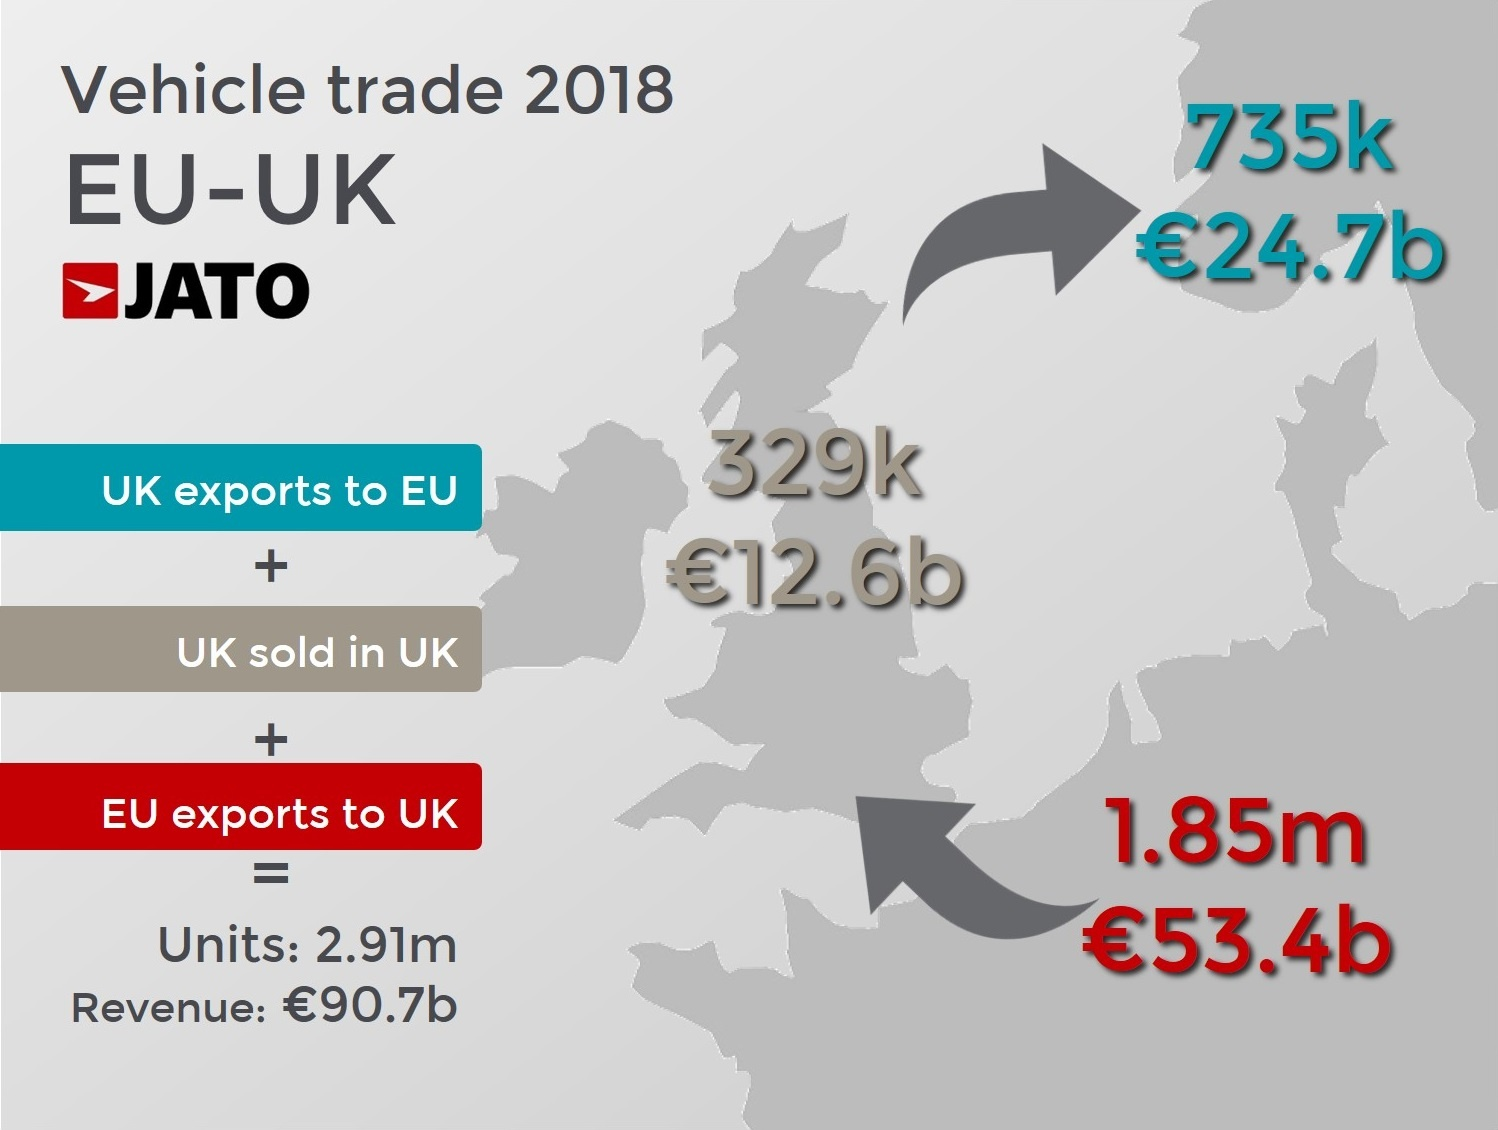 What brexit means for the automotive industry: 17% of the car trade